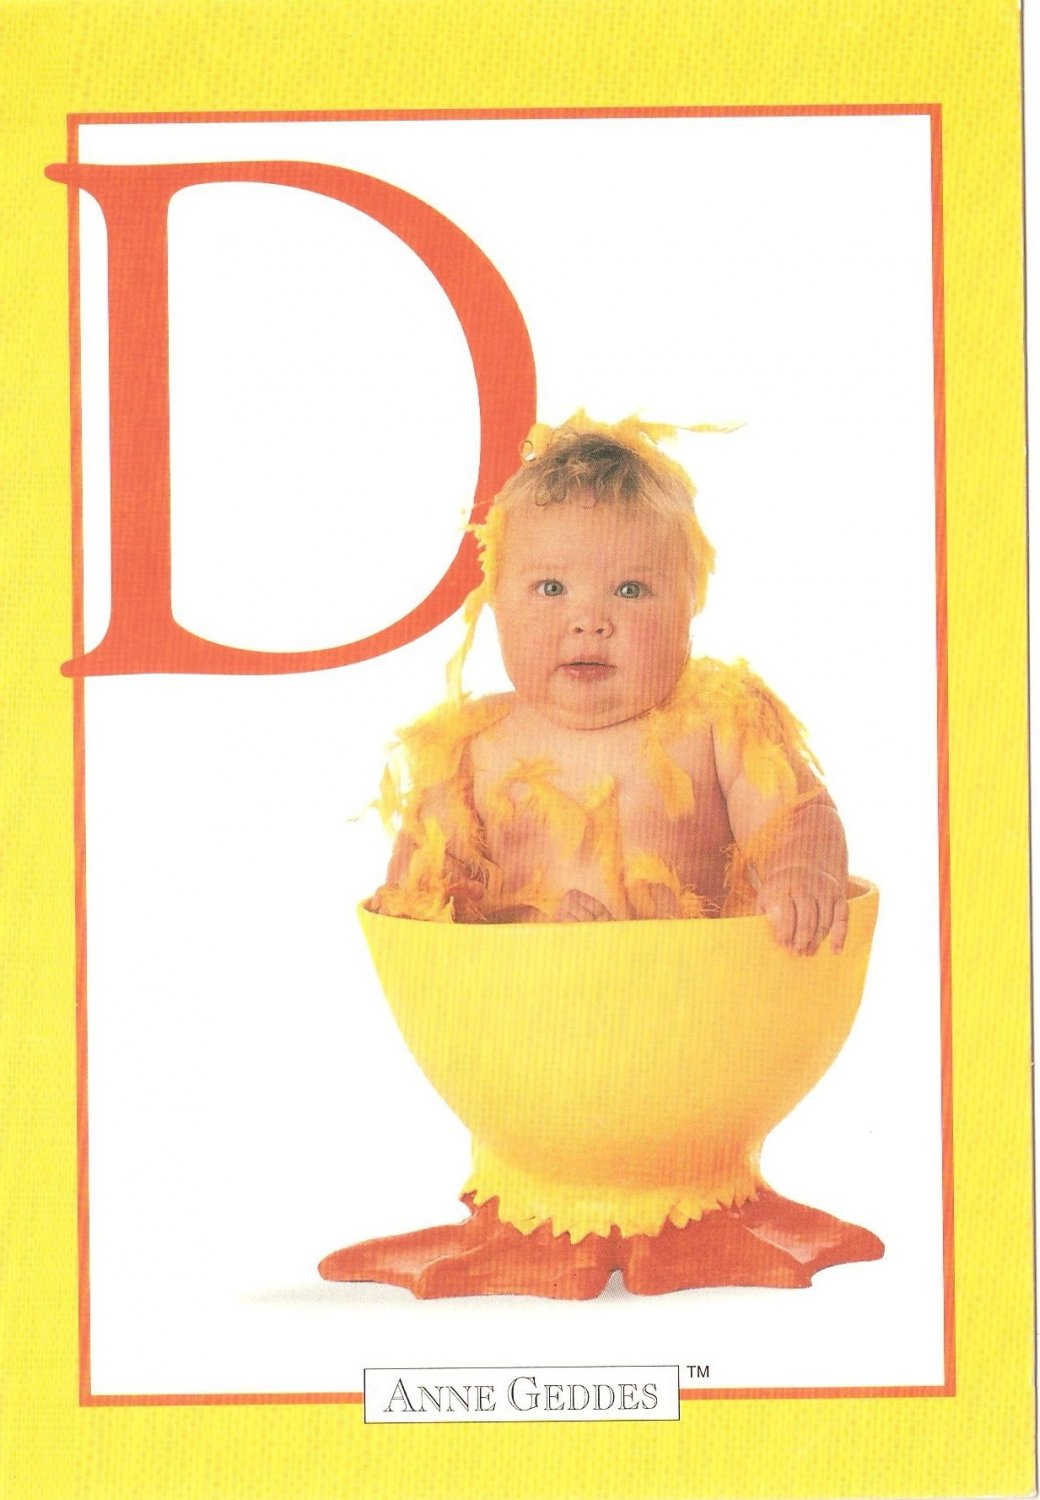 Anne Geddes Postcard 1995 605-057 D is for Duckling Baby 4x6